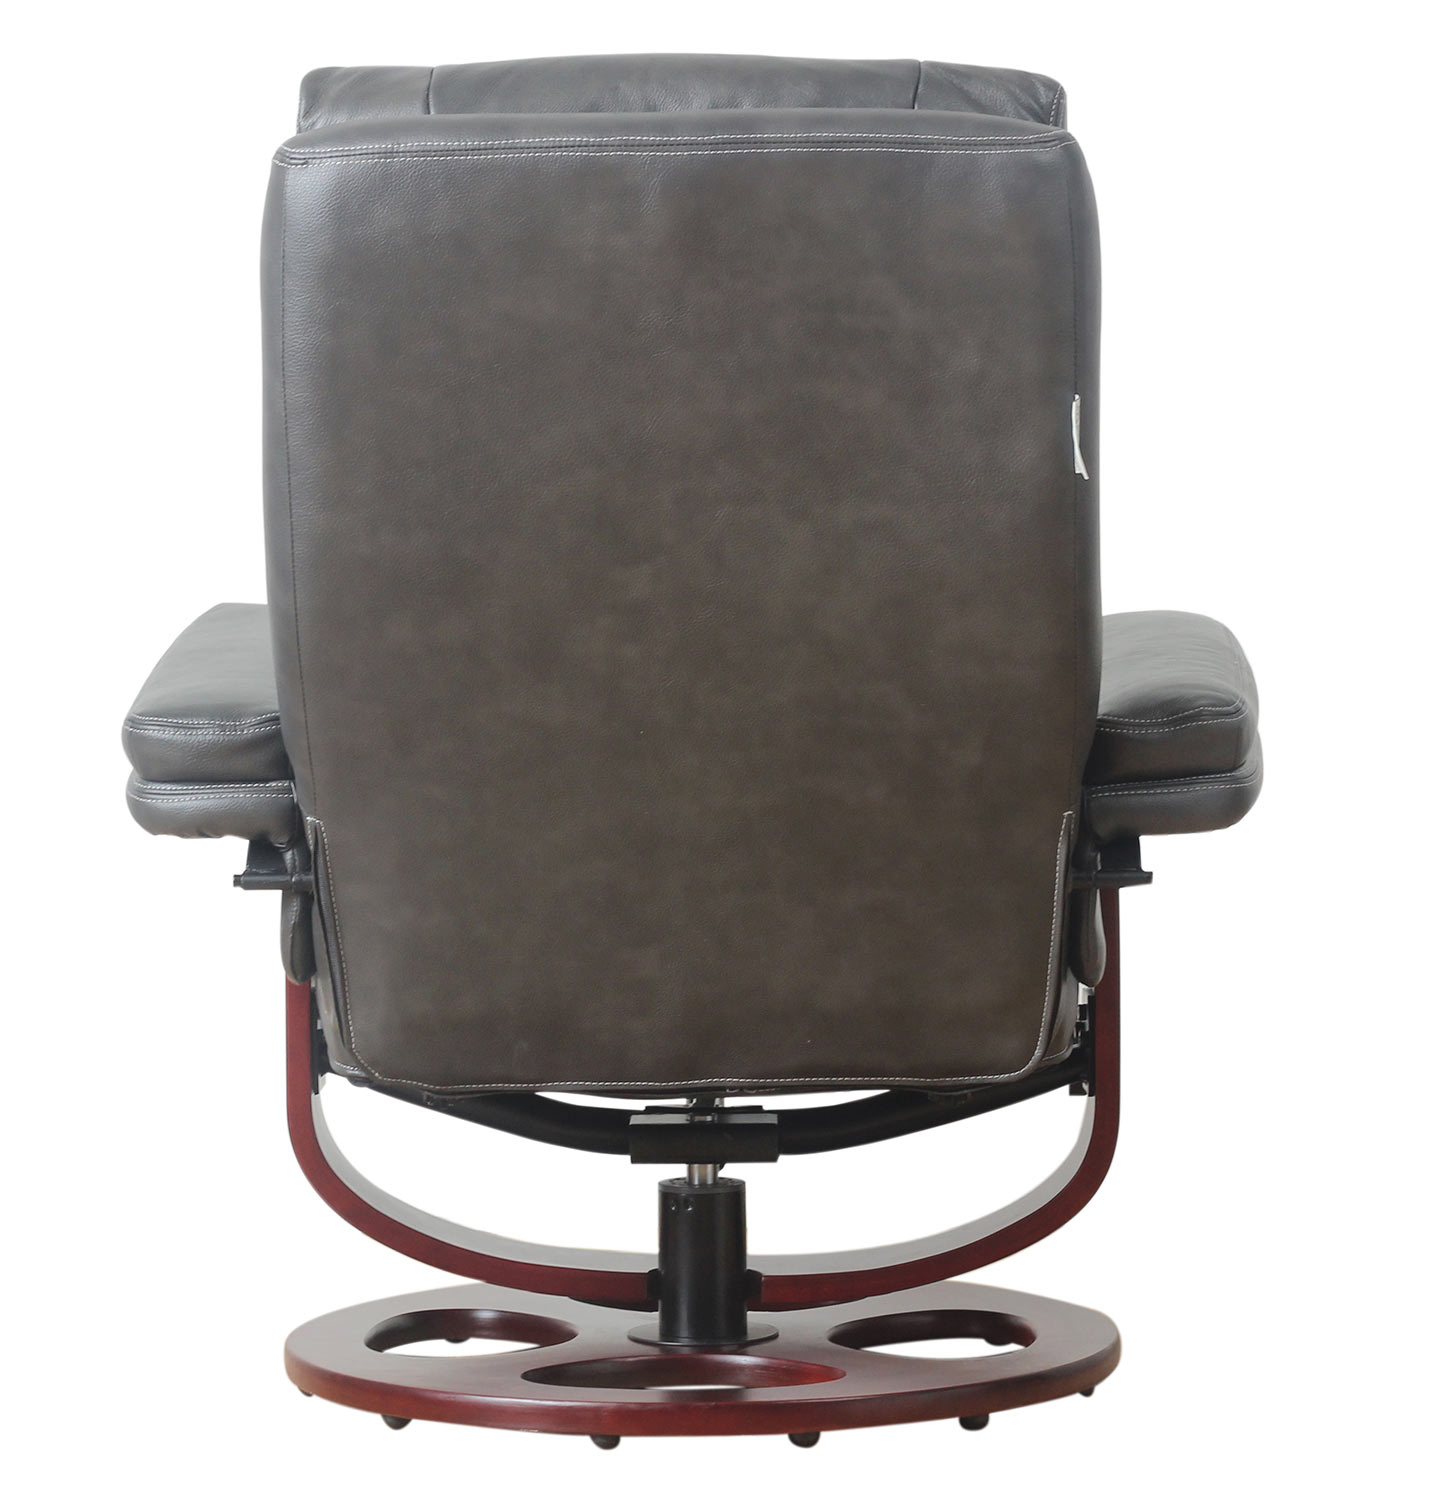 Barcalounger Bella Pedestal Recliner Chair and Ottoman - Chelsea Graphite/Leather Match